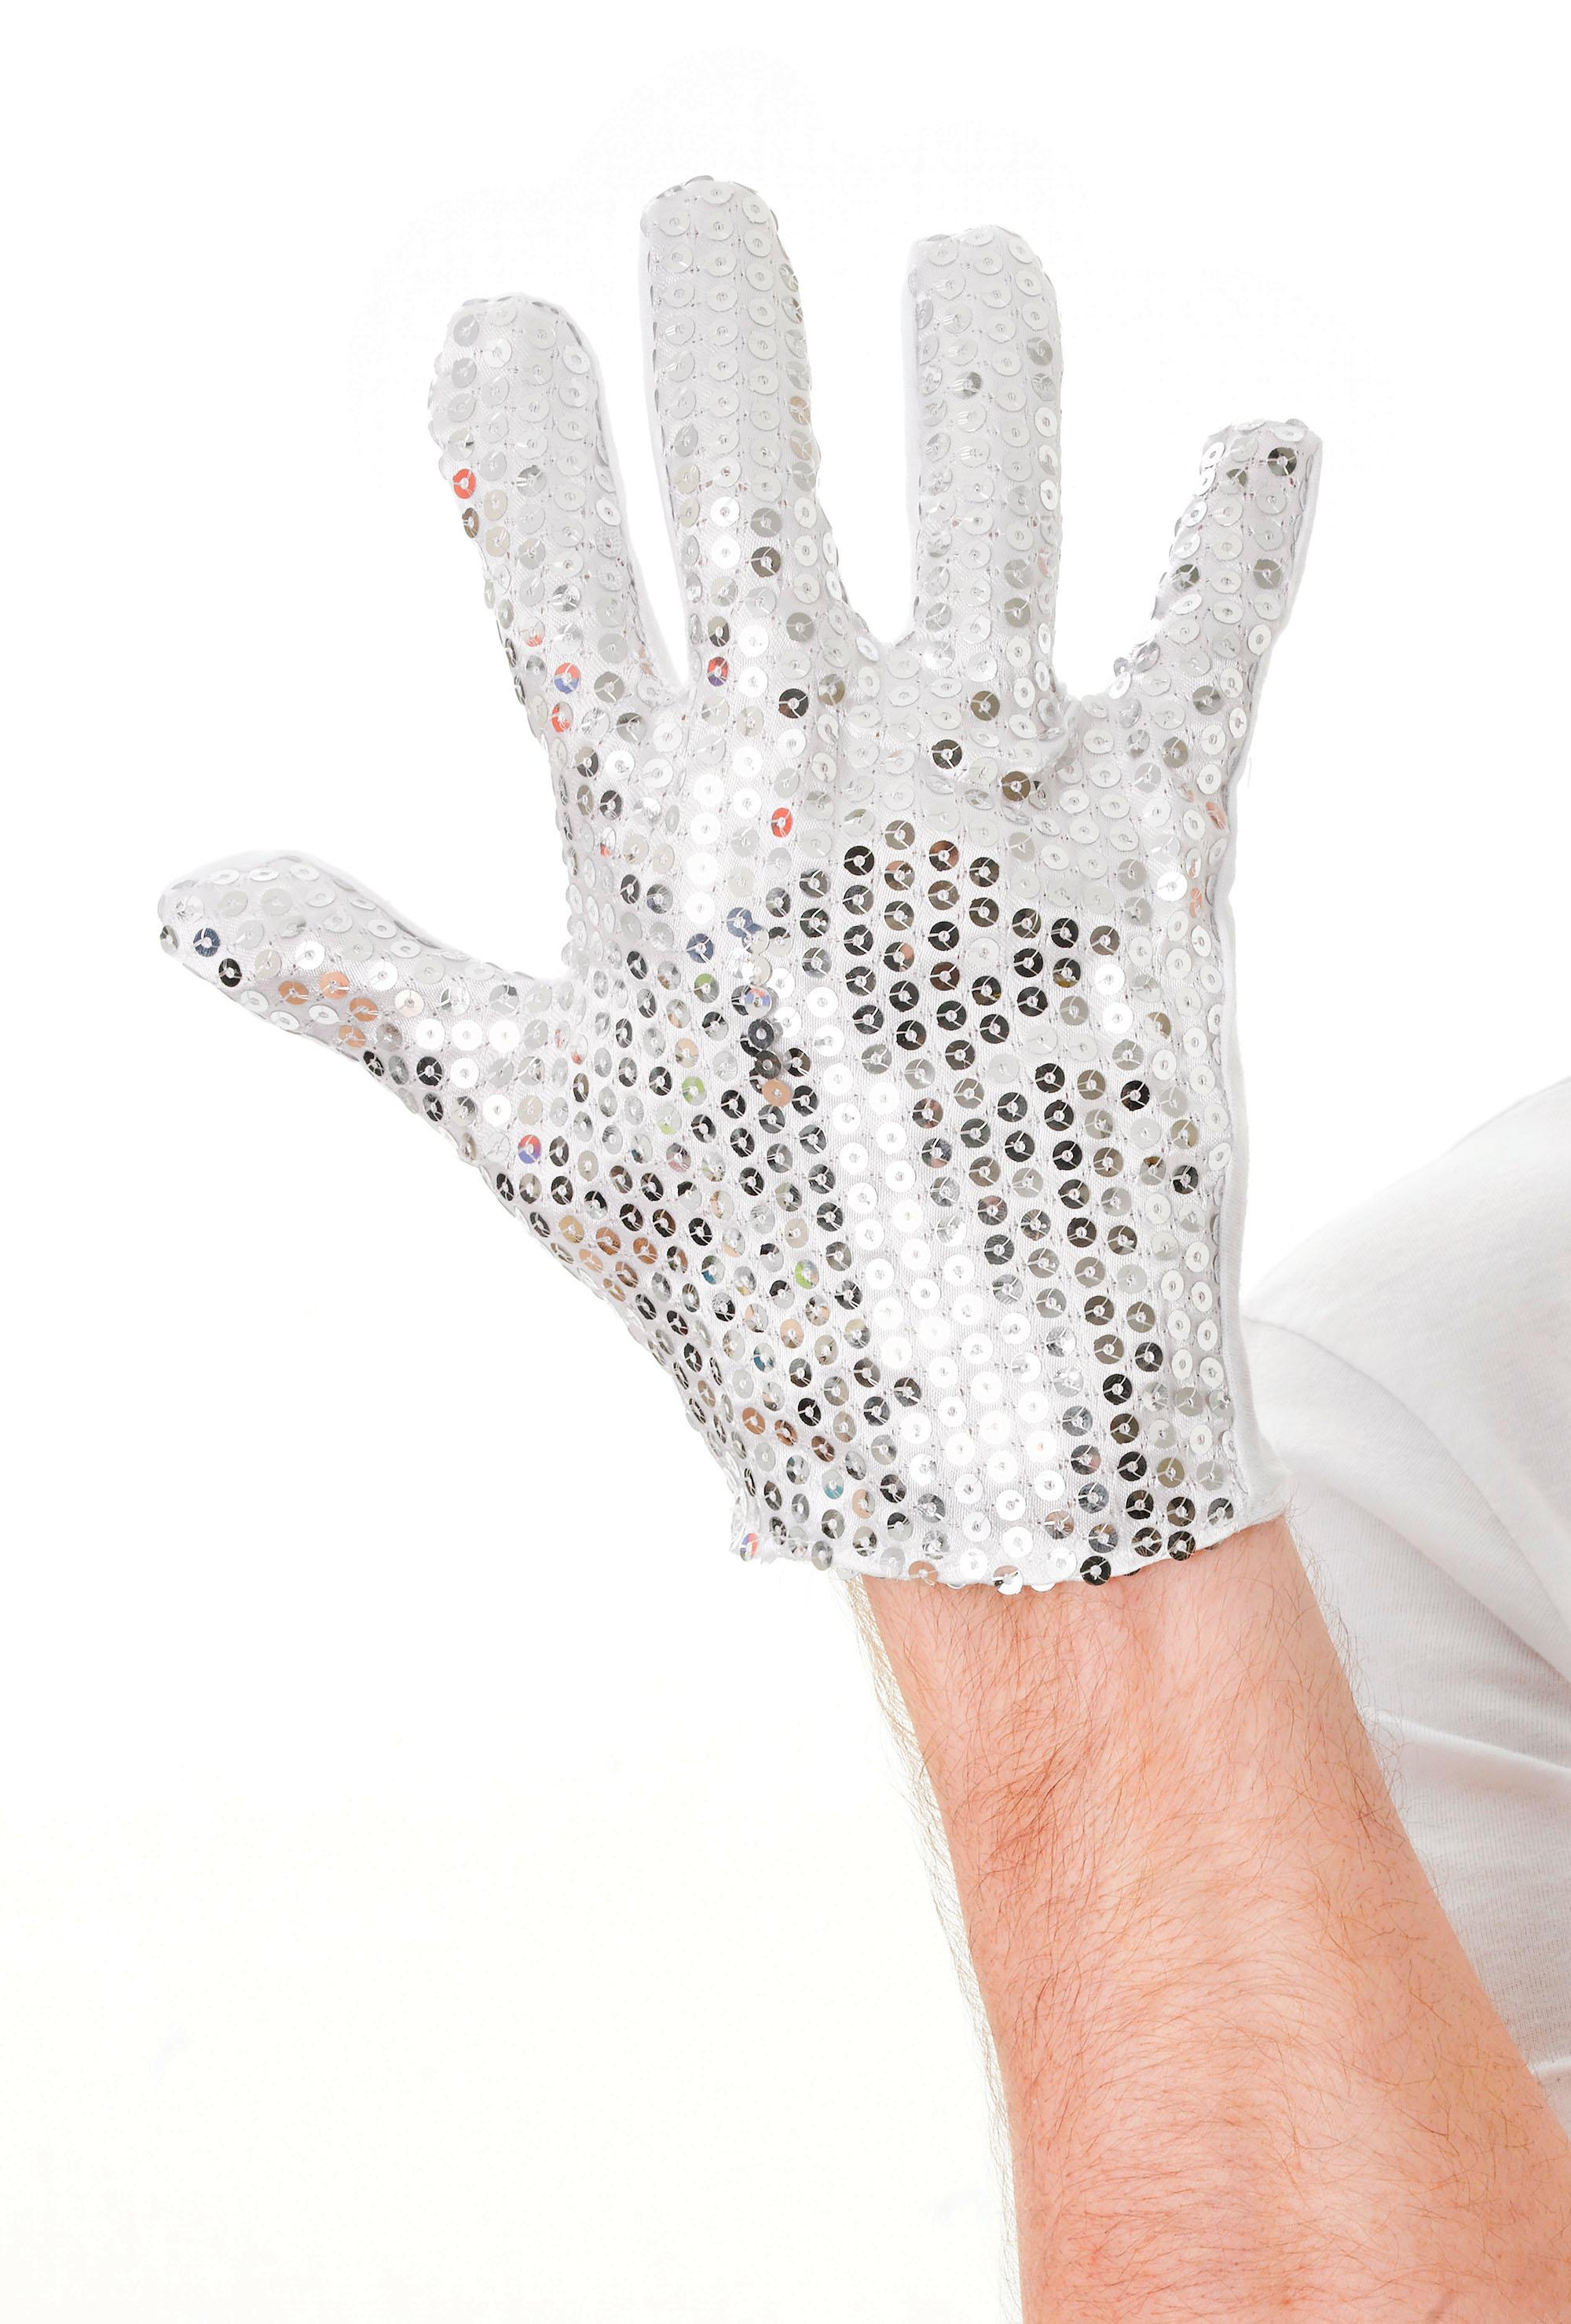 Silver Sequin Glove